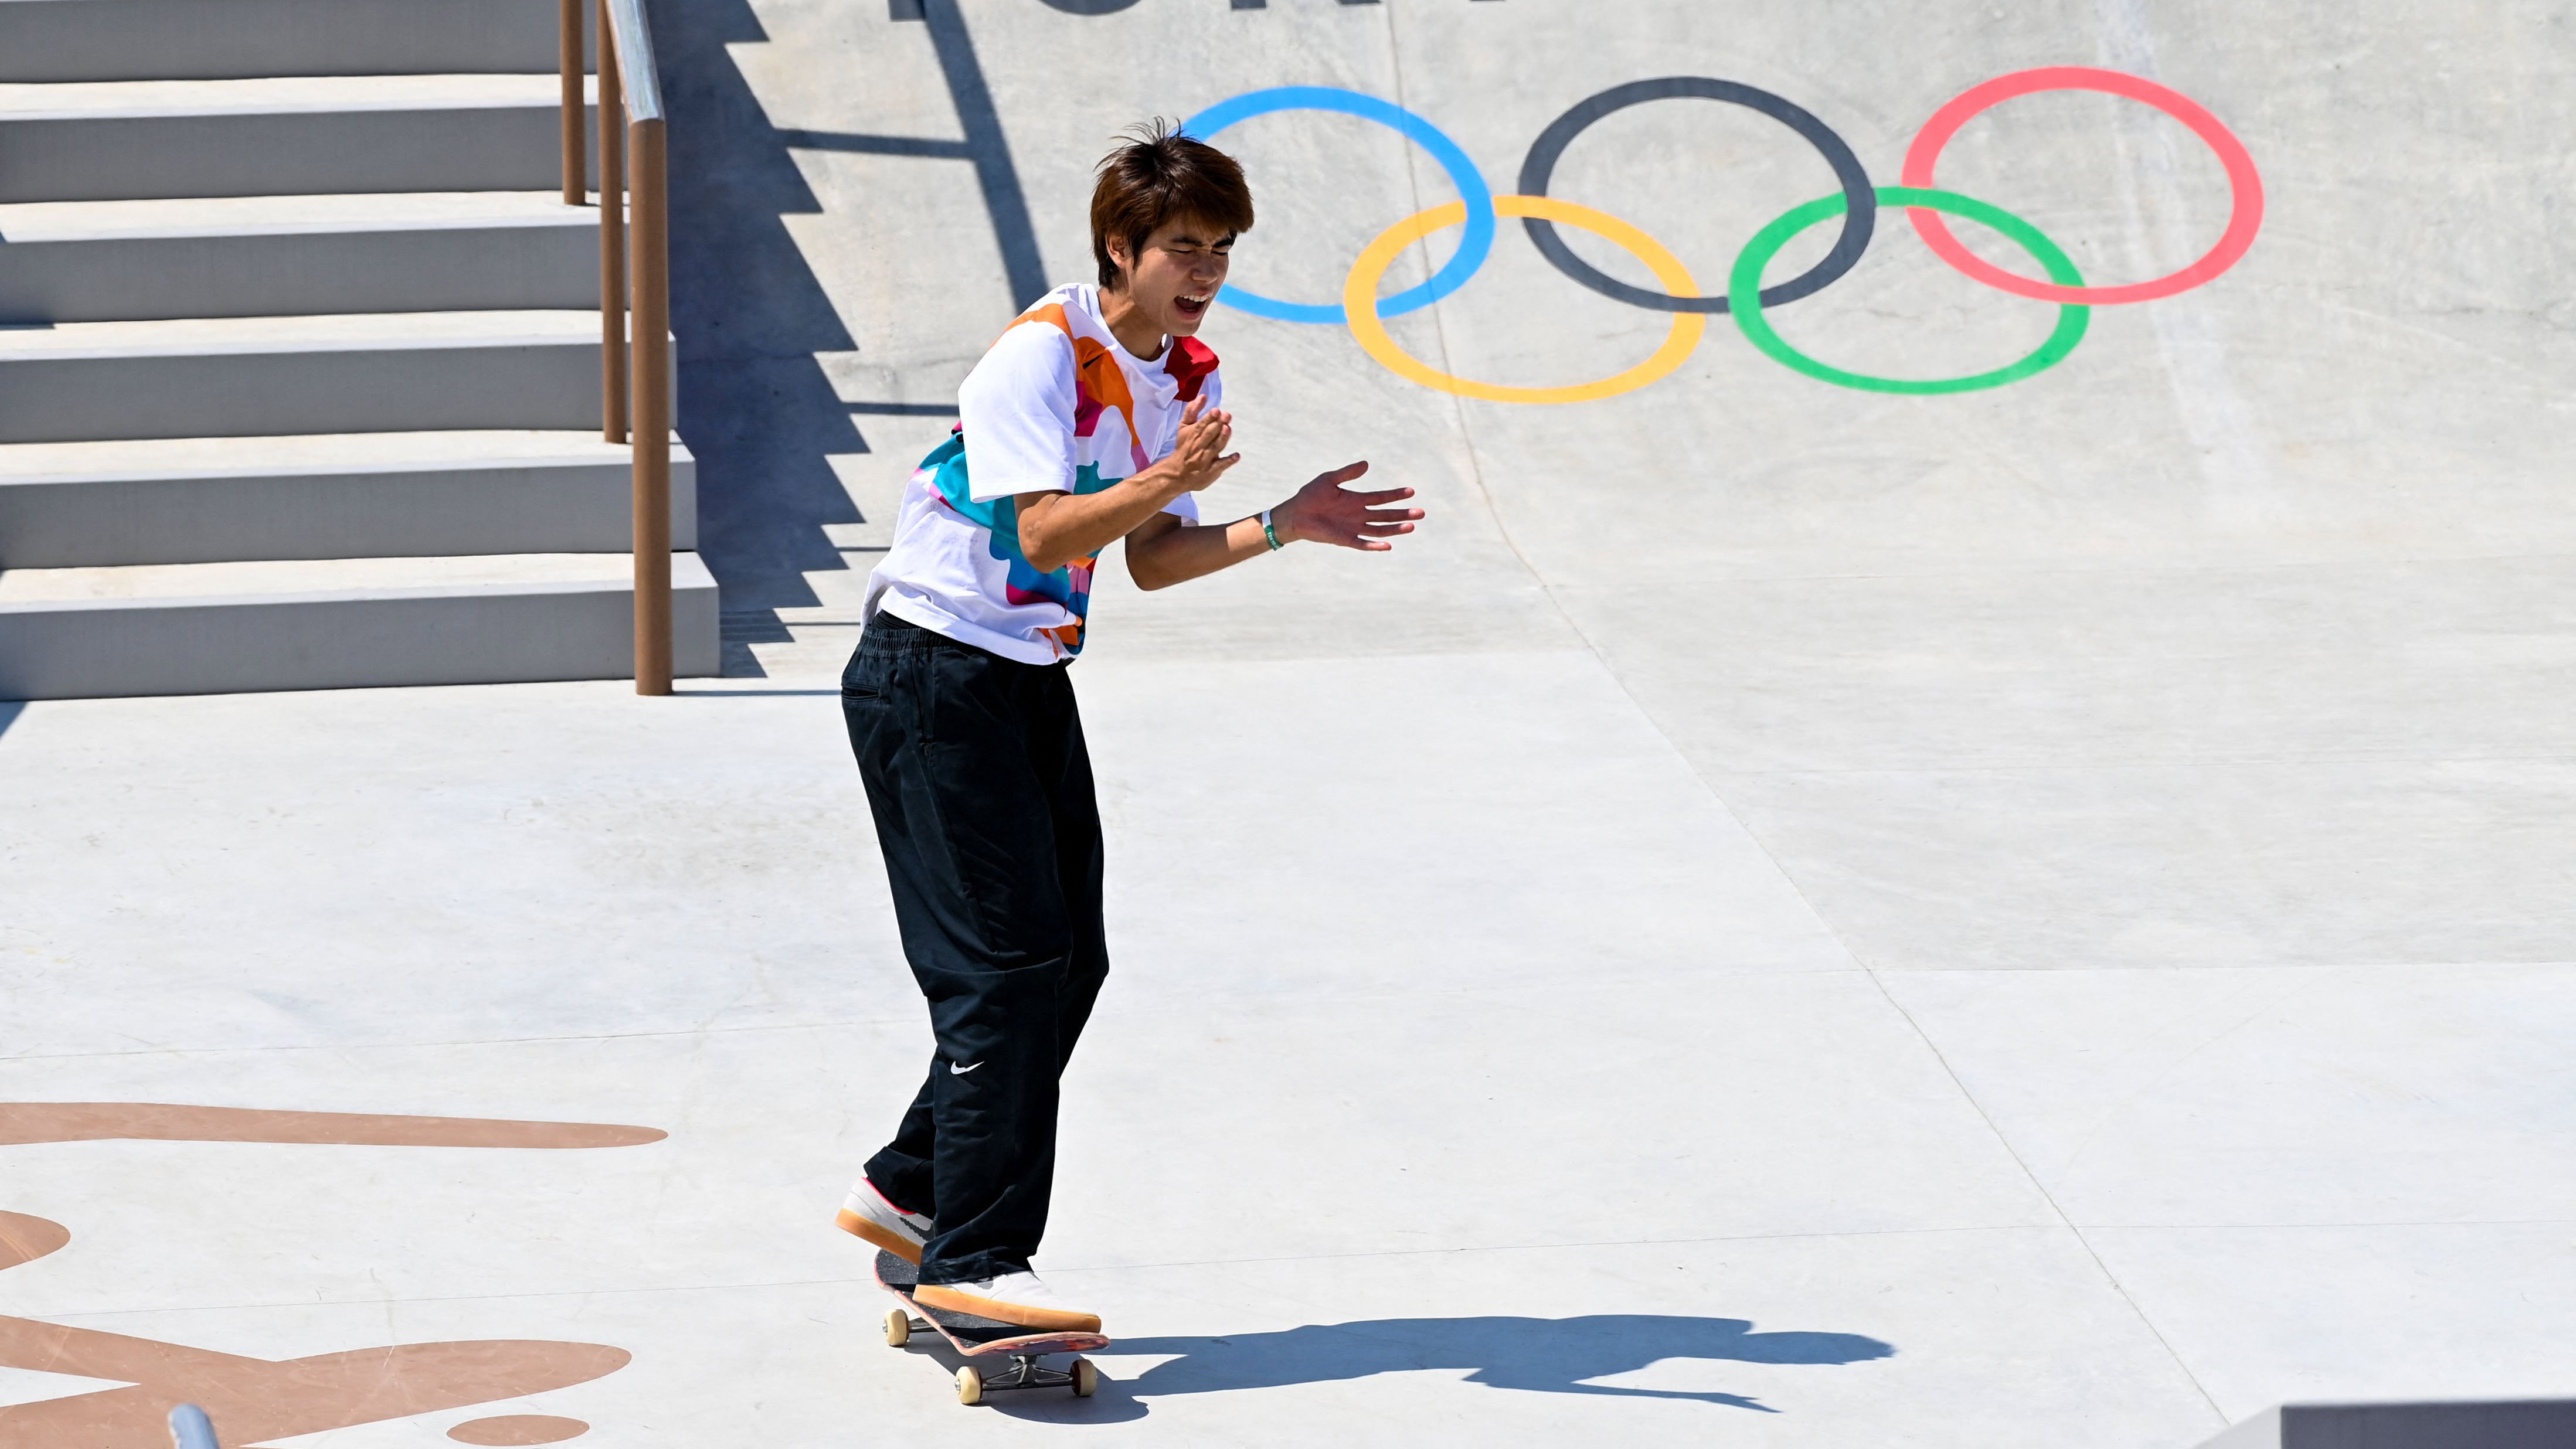 Japan's Yuto Horigome reacts as he competes in the street final on July 25.